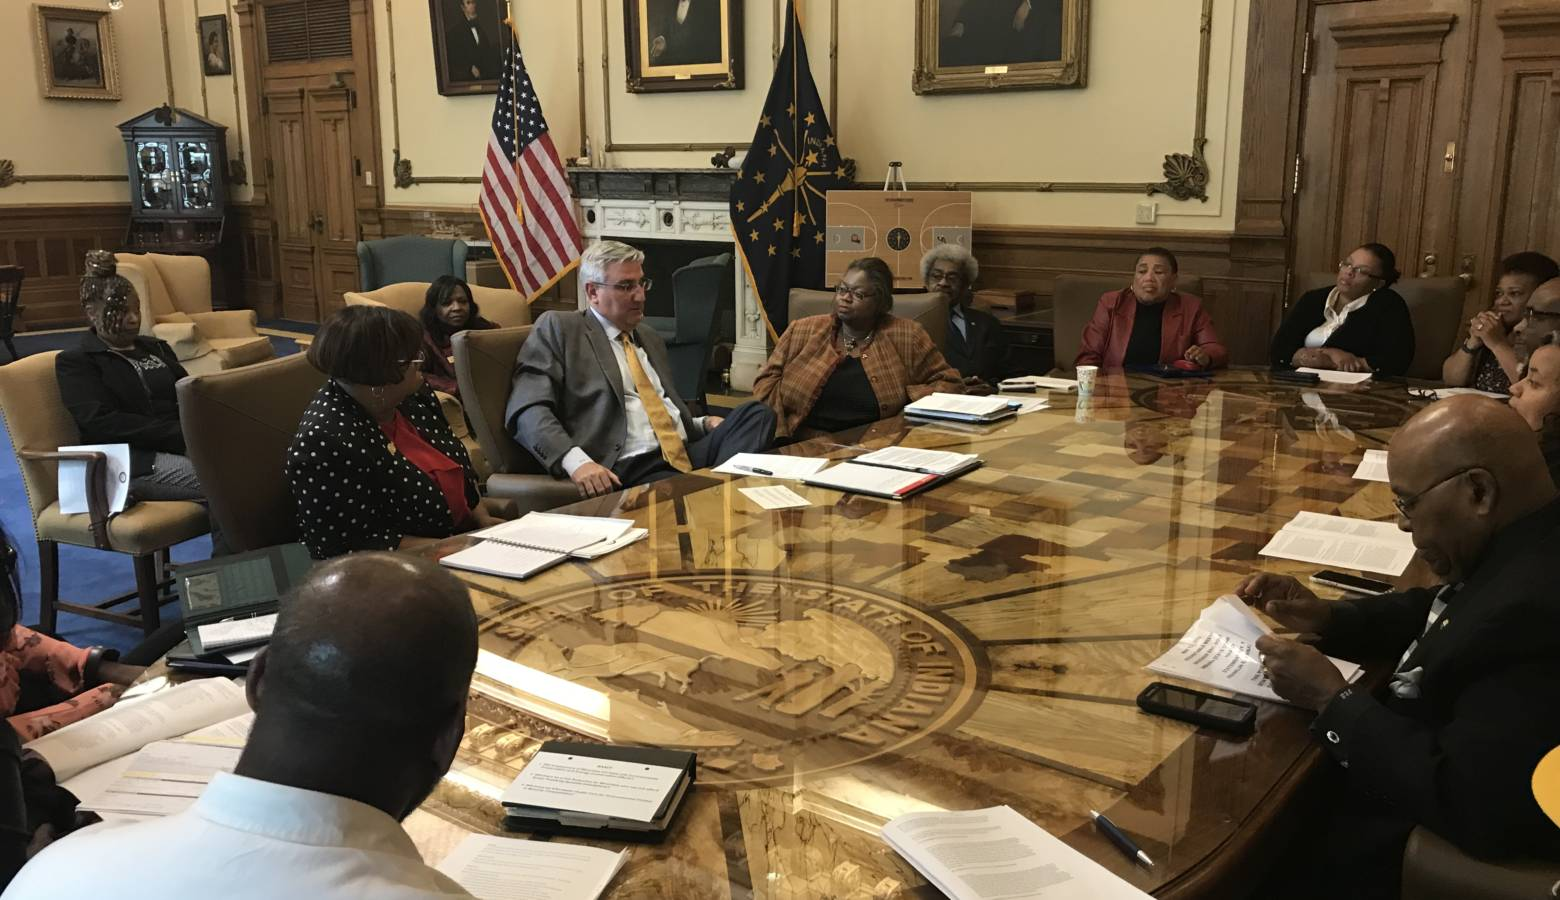 Governor Eric Holcomb met with members of the Indiana NAACP for a roundtable discussion on Monday (Provided by Indiana NAACP)